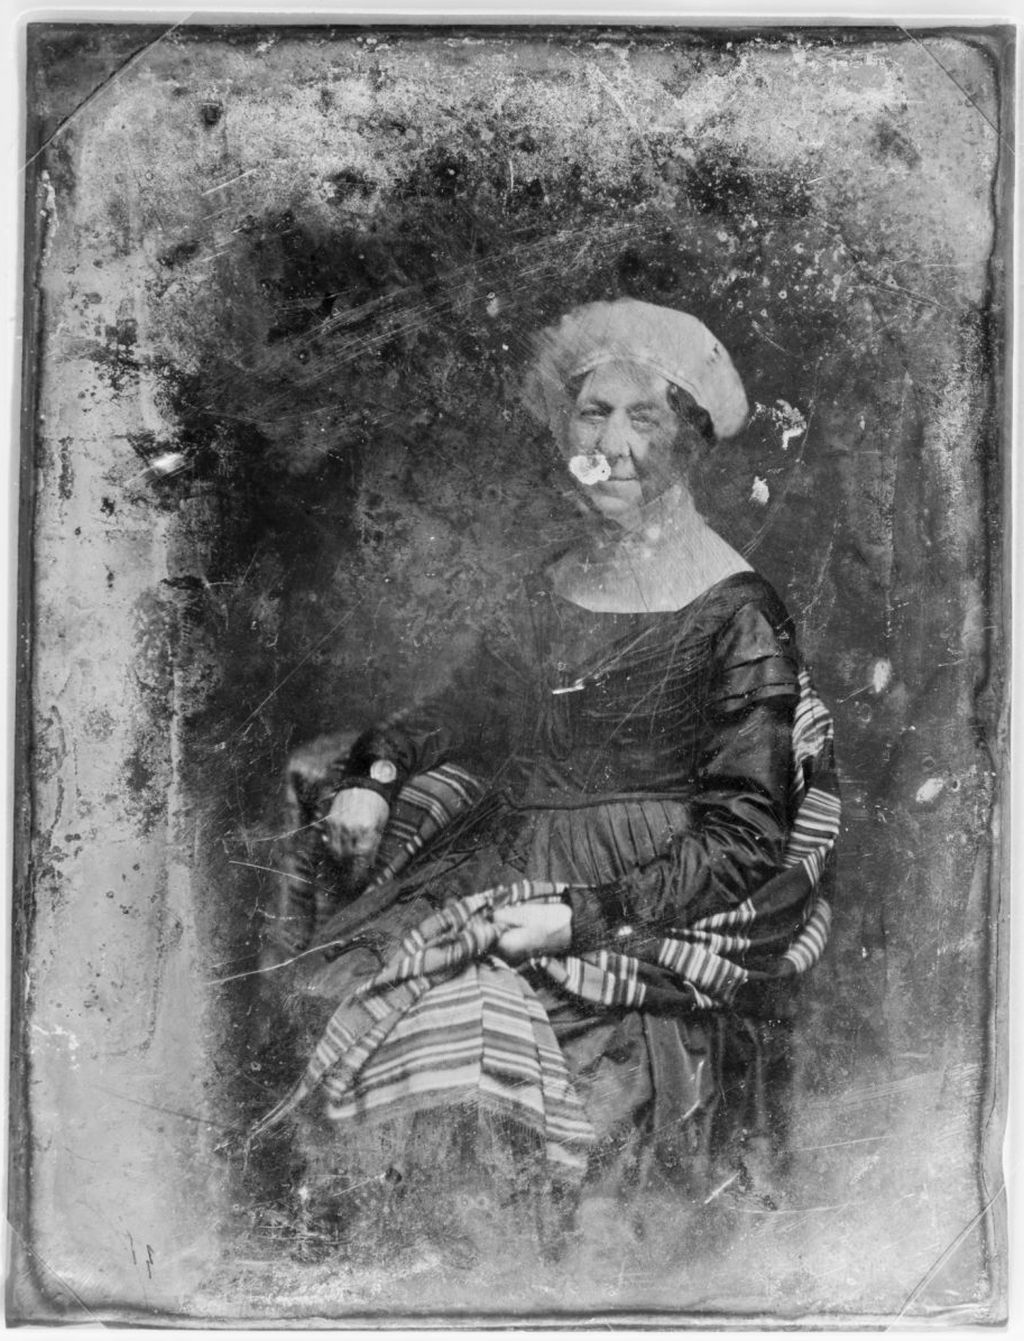 A young Matthew Brady made a daguerreotype of Dolley Madison in 1848. Library of Congress.